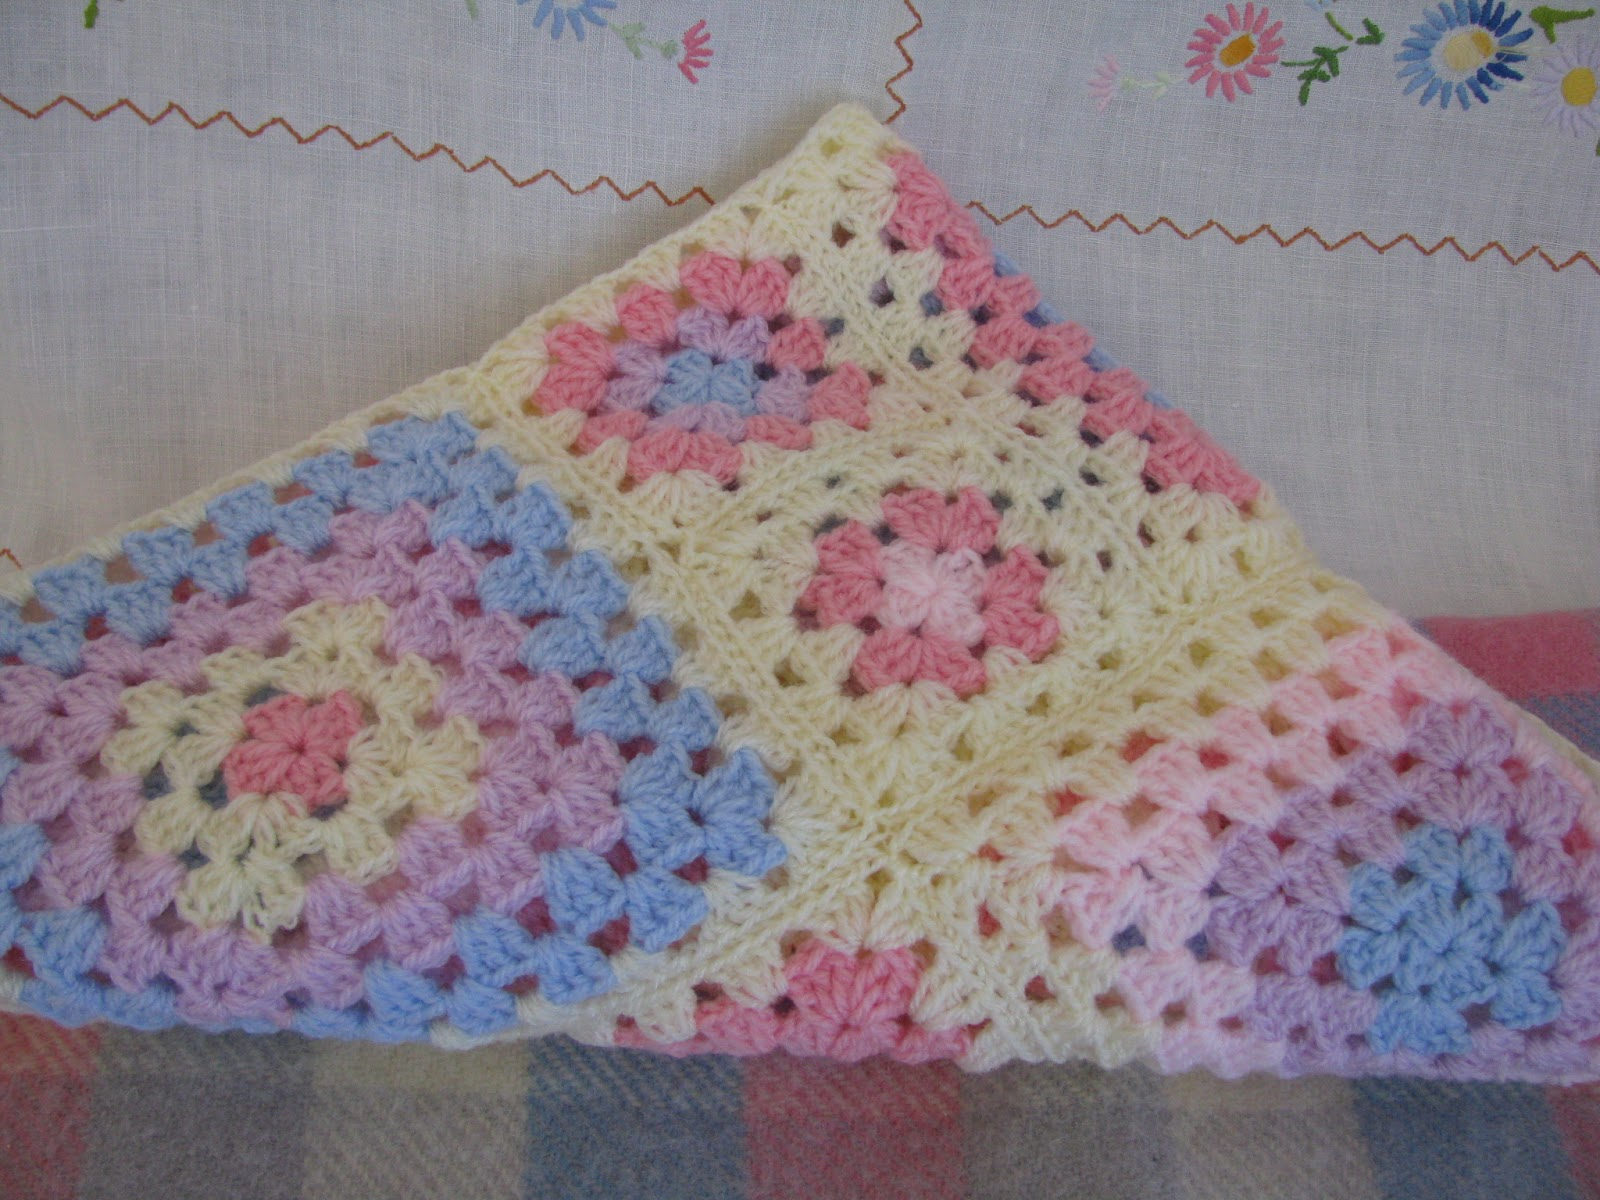 Crocheting A Baby Quilt : Crochet Baby Blanket